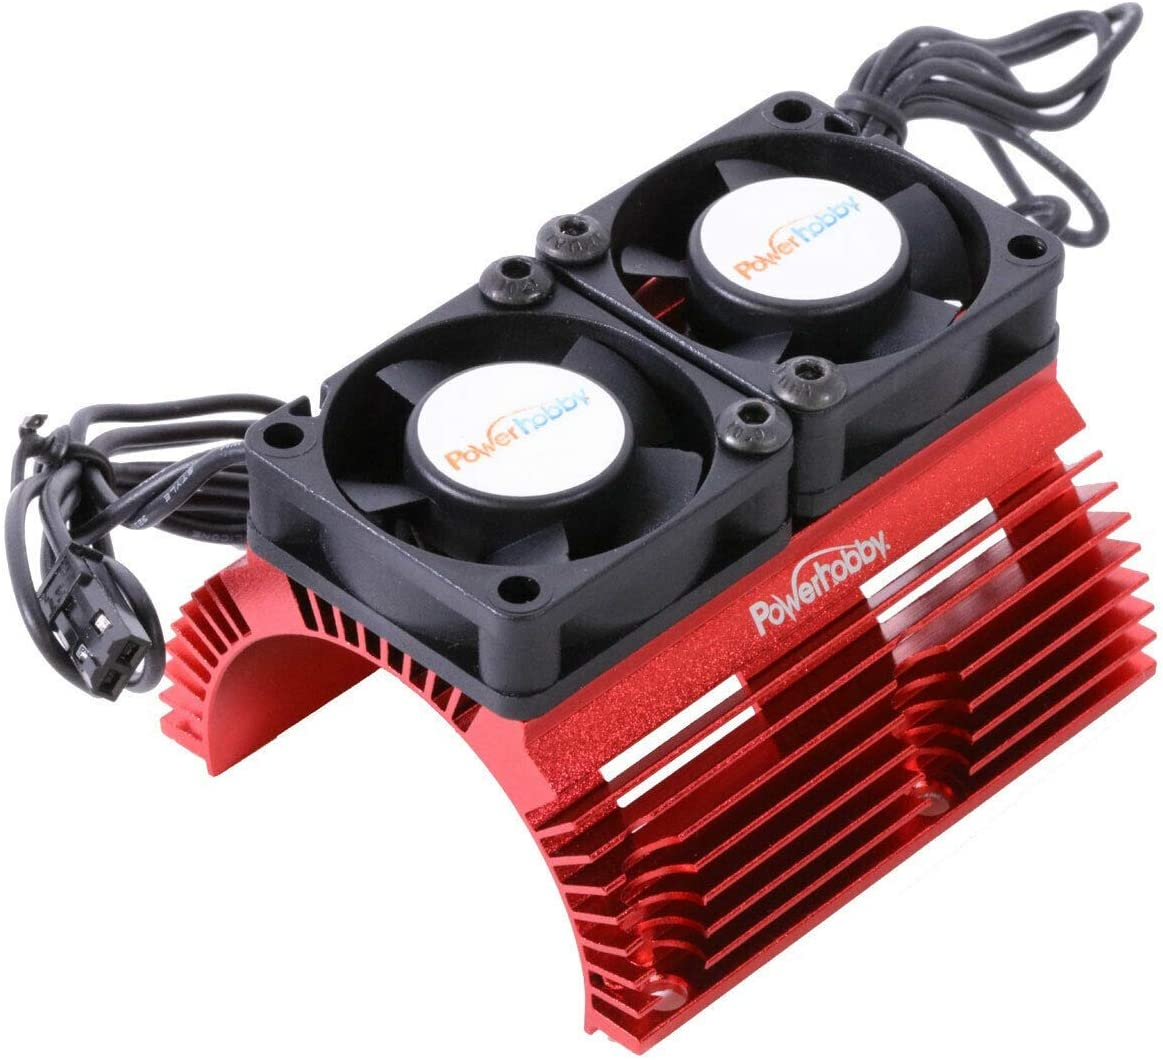 Powerhobby Aluminum Heat Sink with Twin Turbo High Speed Fans Sets for 1:8 Motors with Around 40.8mm Diameter (Red)